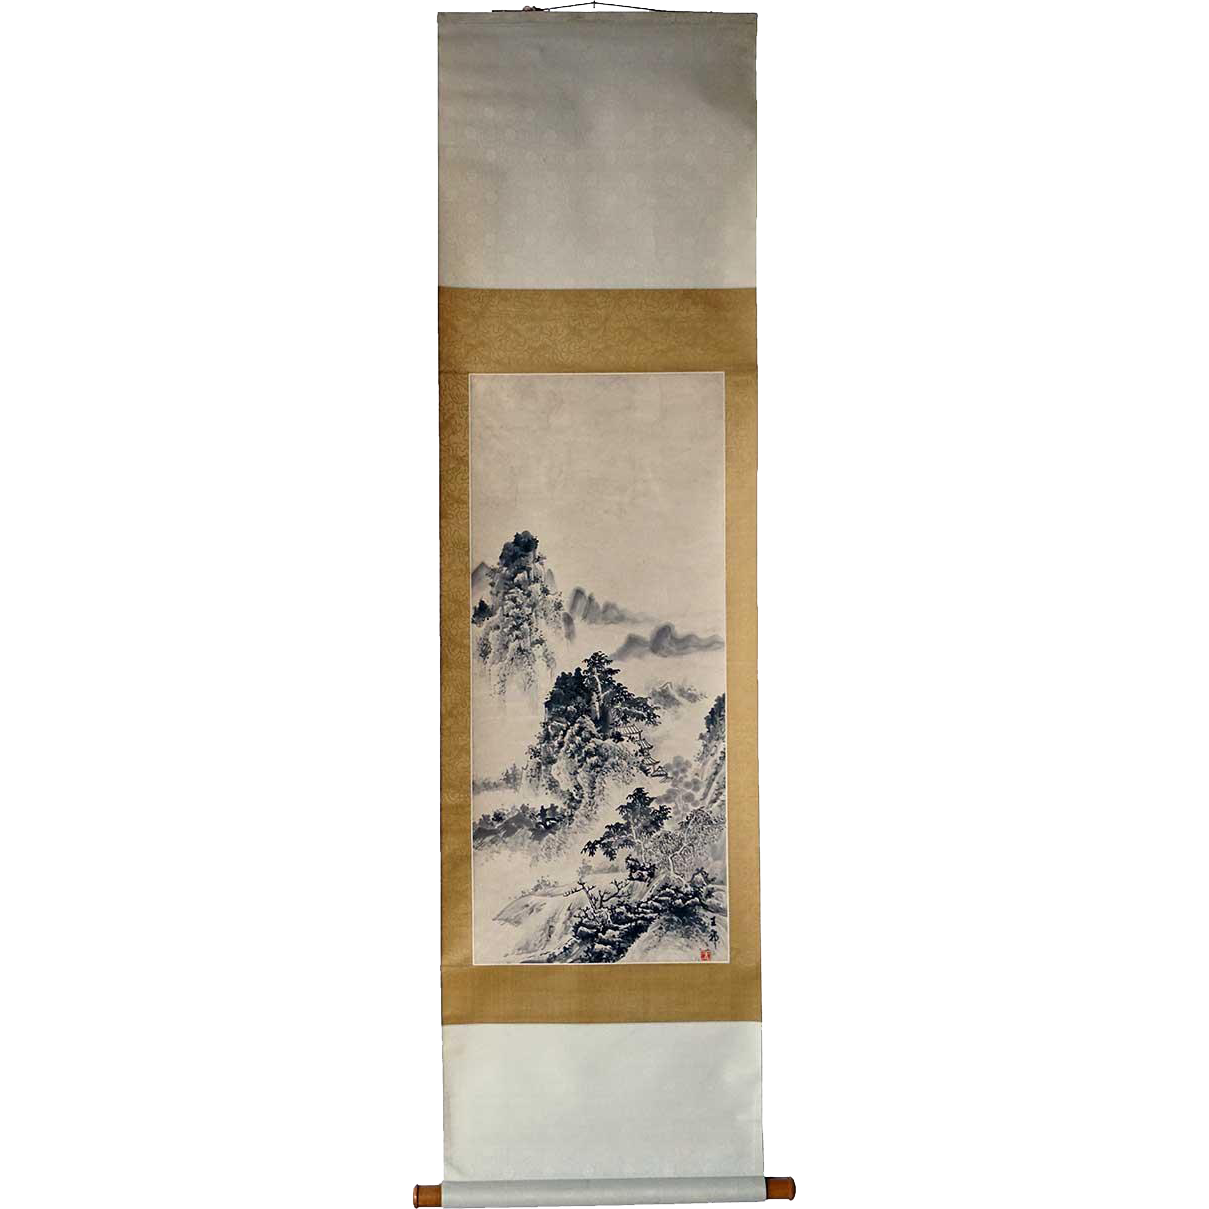 Chinese Vertical Hanging Scroll Ink Painting on Paper of a Landscape